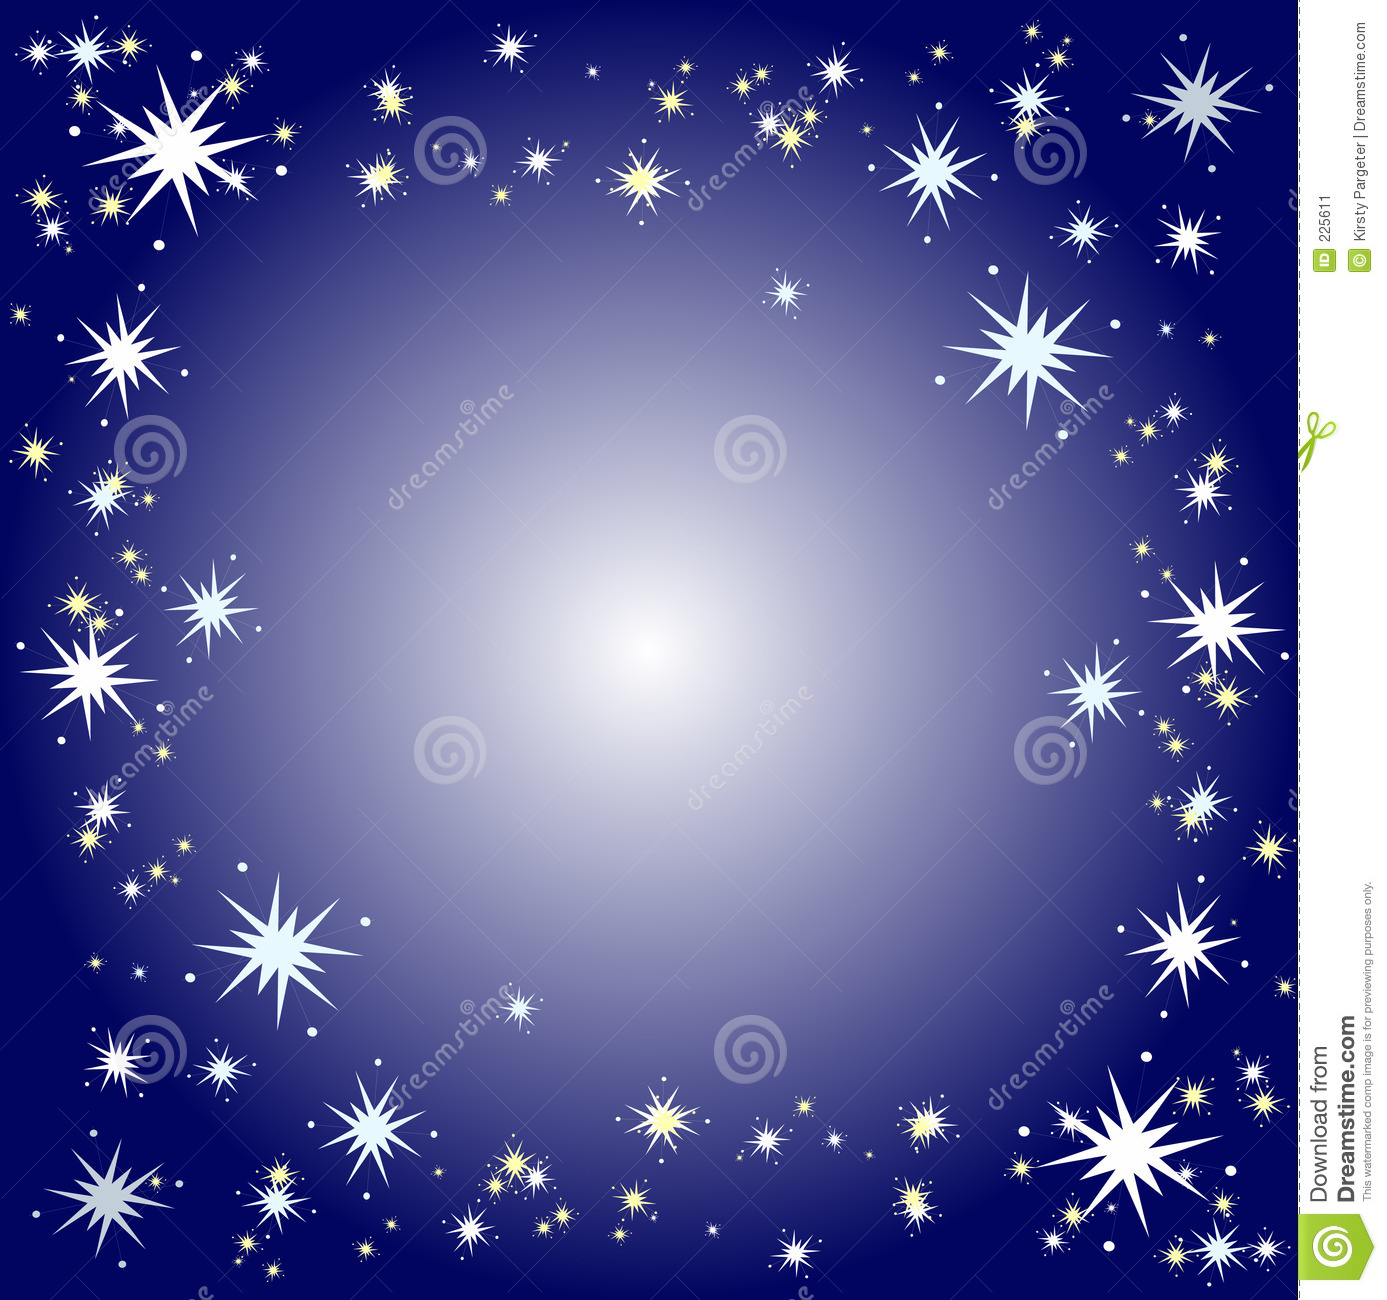 Download Starry background stock vector. Illustration of explode - 225611